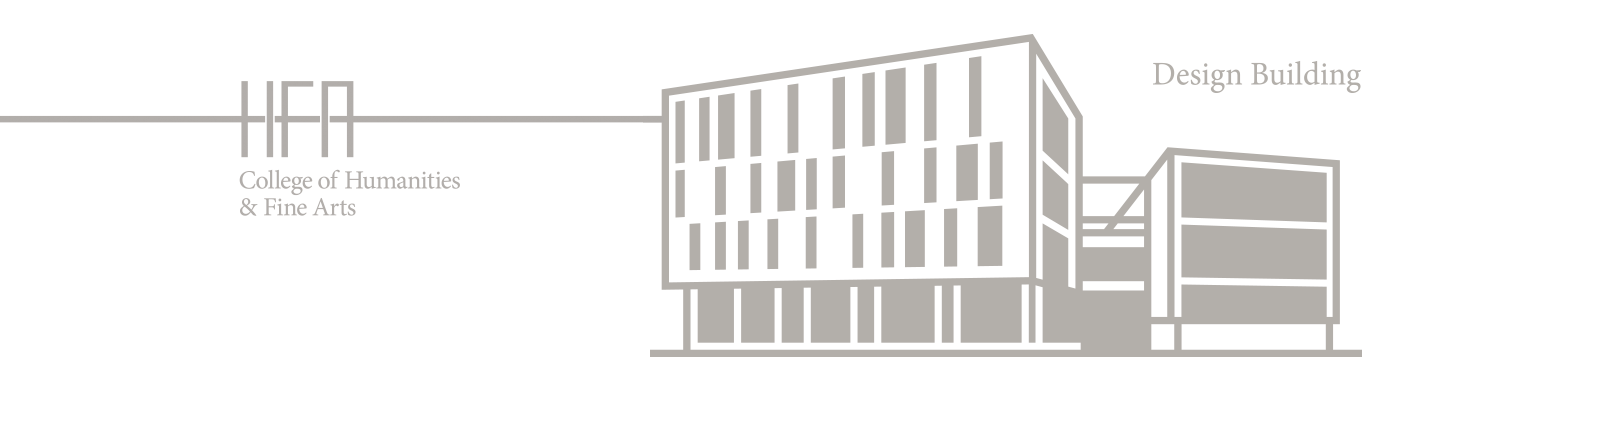 Stylized rendering of the Design Building, home of the Department of Architecture